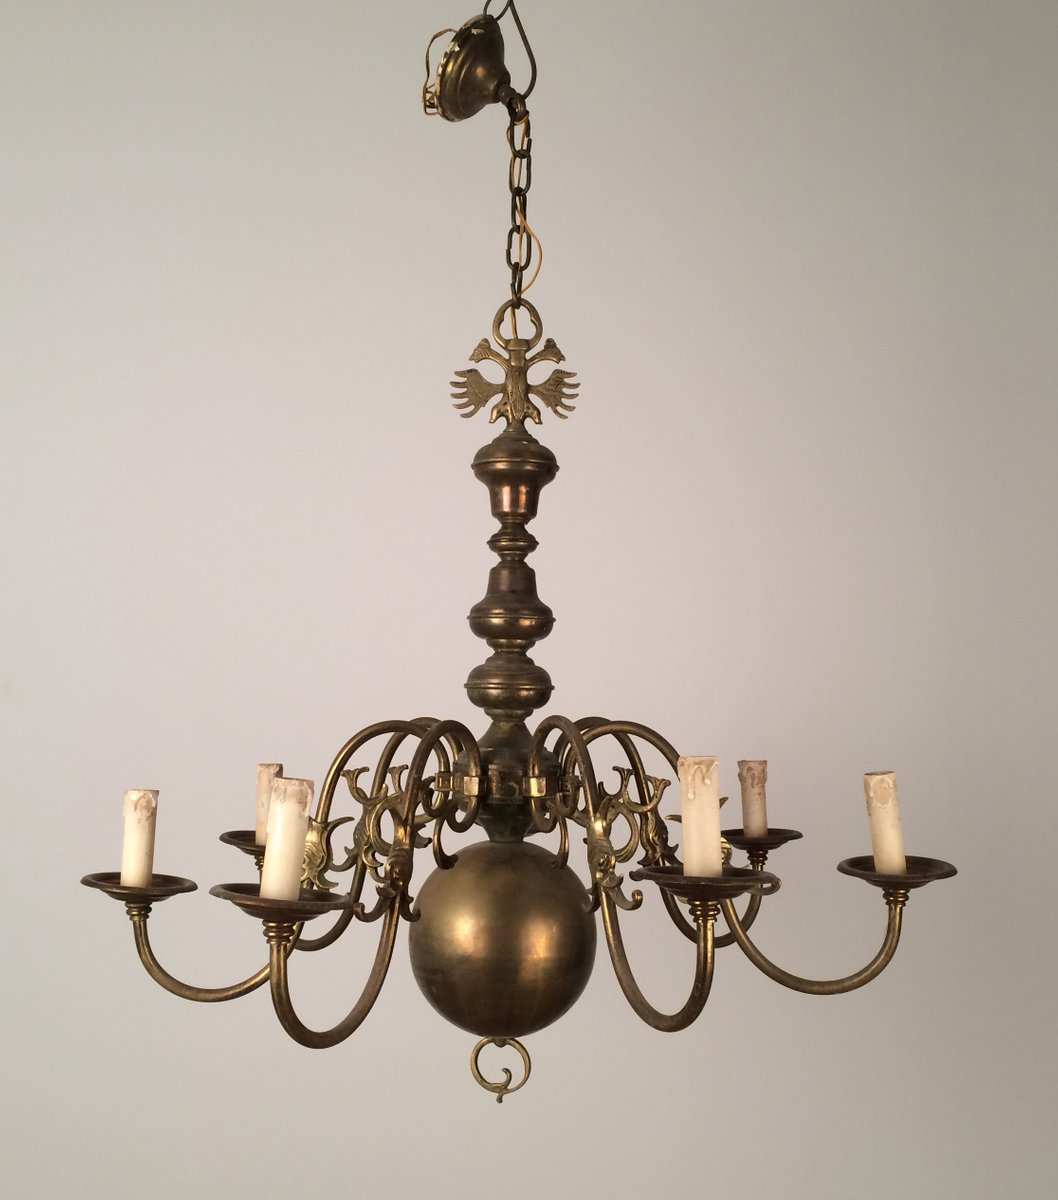 Vintage bronze and brass chandelier 1940s for sale at pamono vintage bronze and brass chandelier 1940s aloadofball Image collections